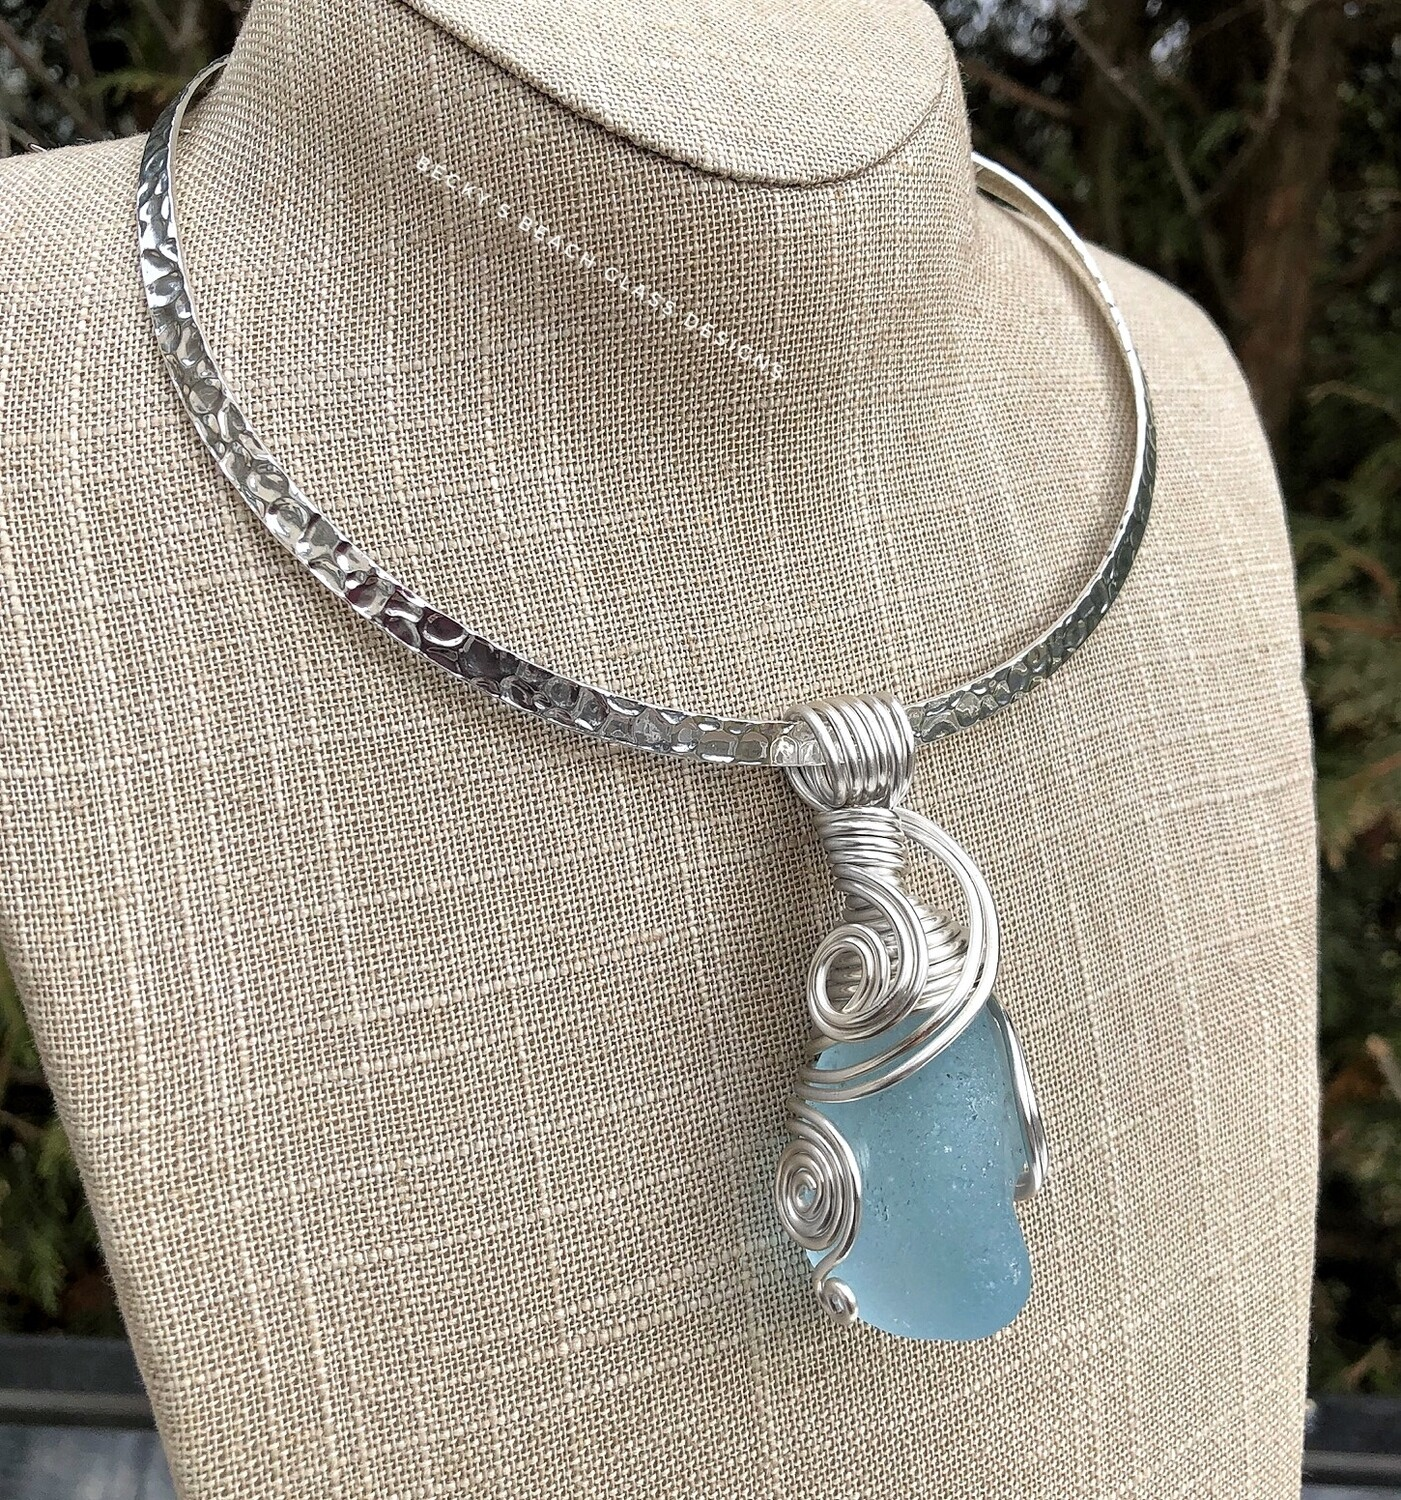 Big Beautiful Baby Blue Sea Glass Necklace